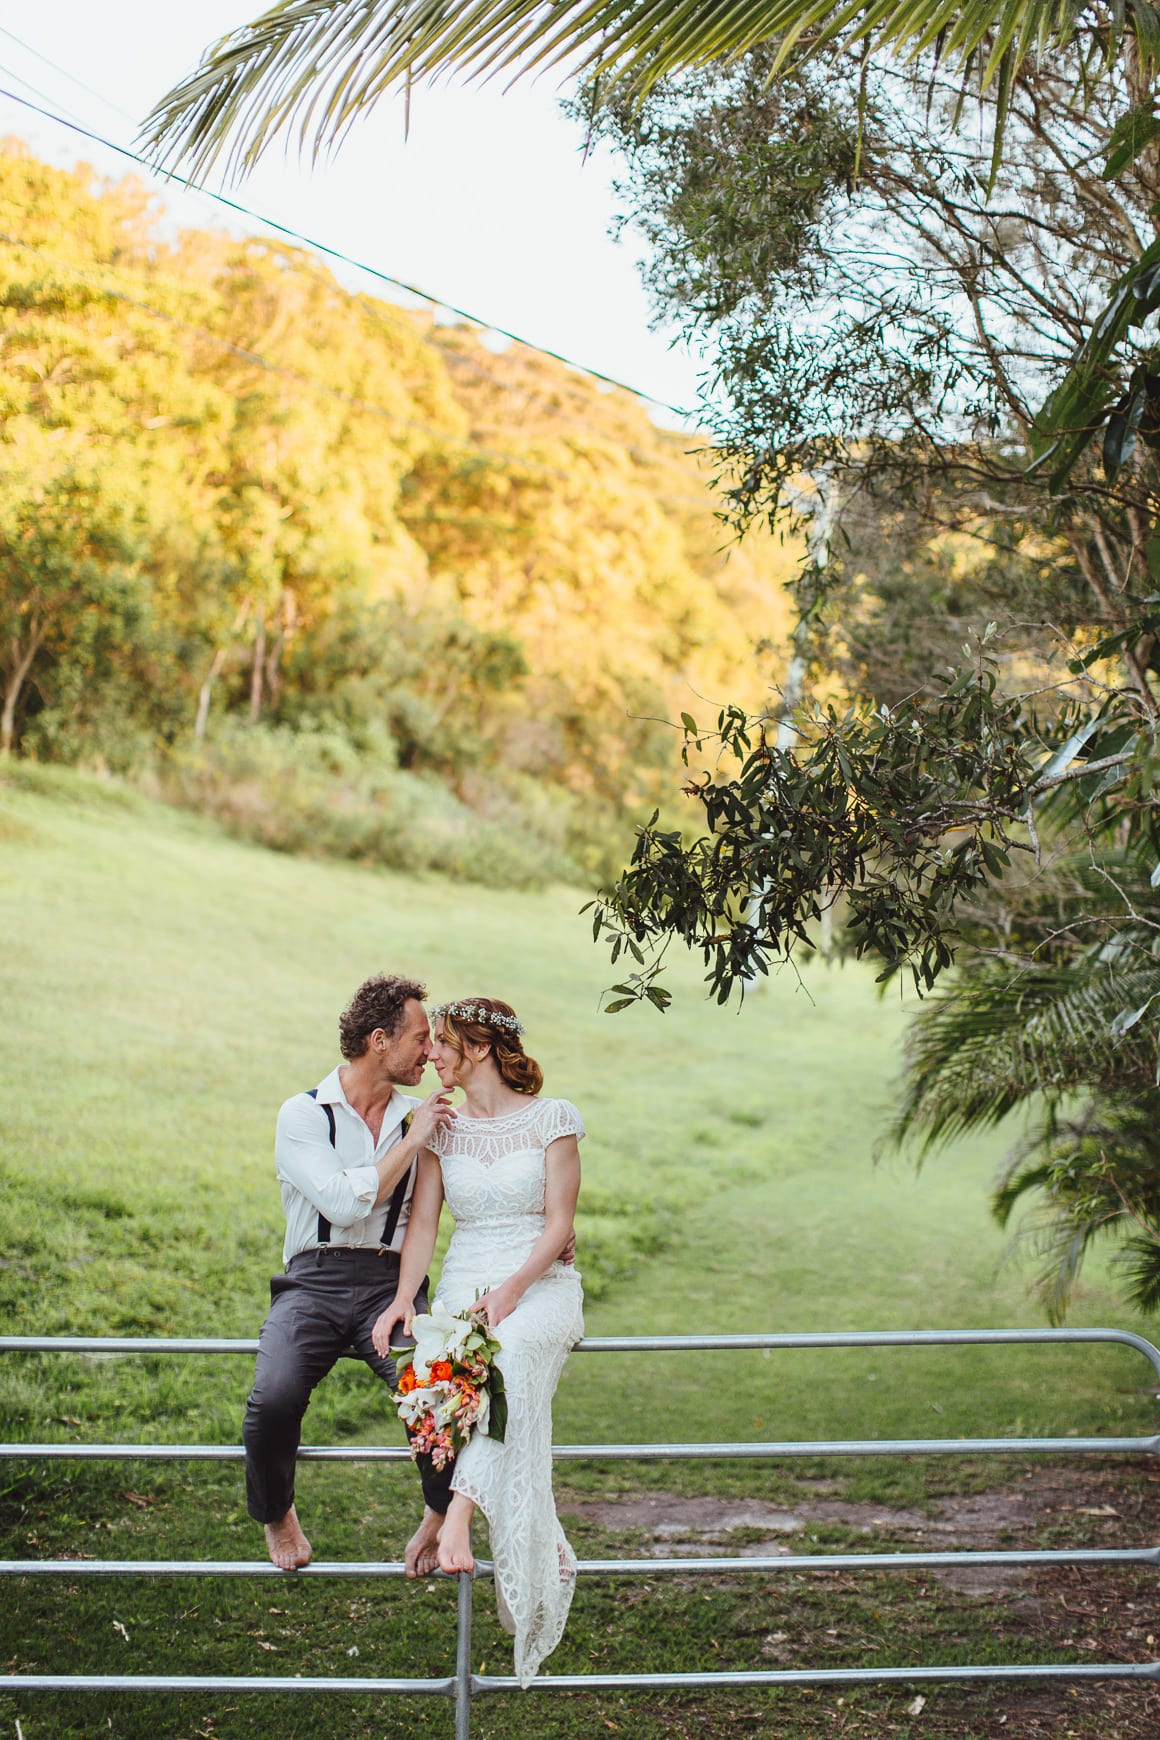 elin_bandmann_photography_wedding_byron_bay-1